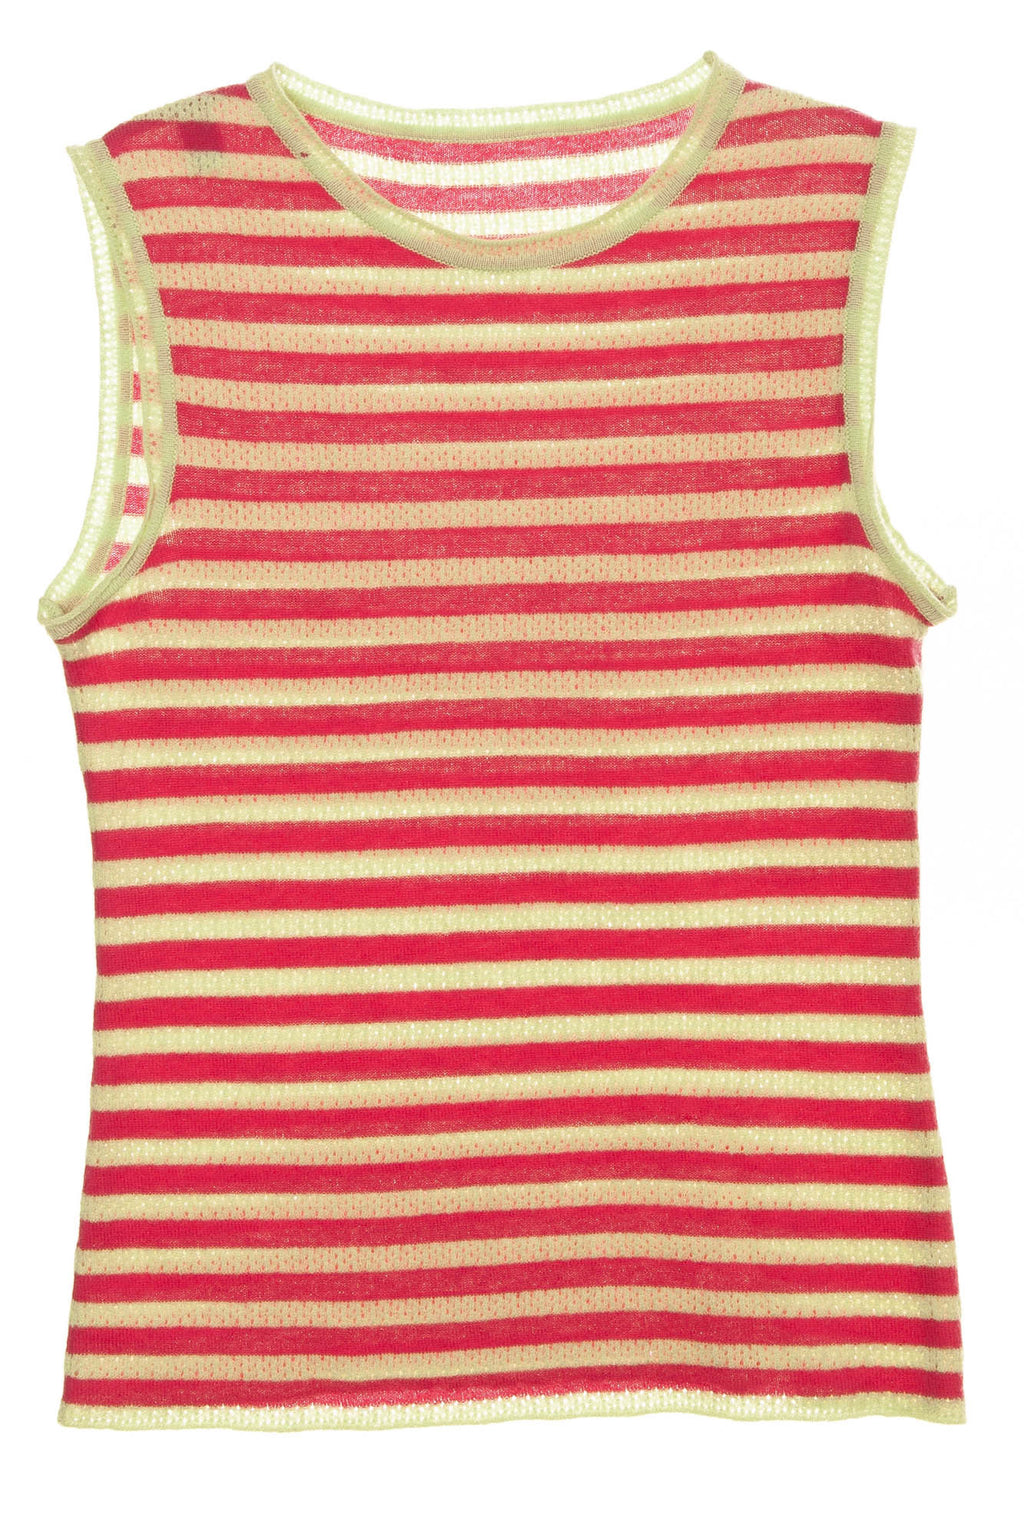 Marc Jacobs - Pink and Green Lined Tank Top -